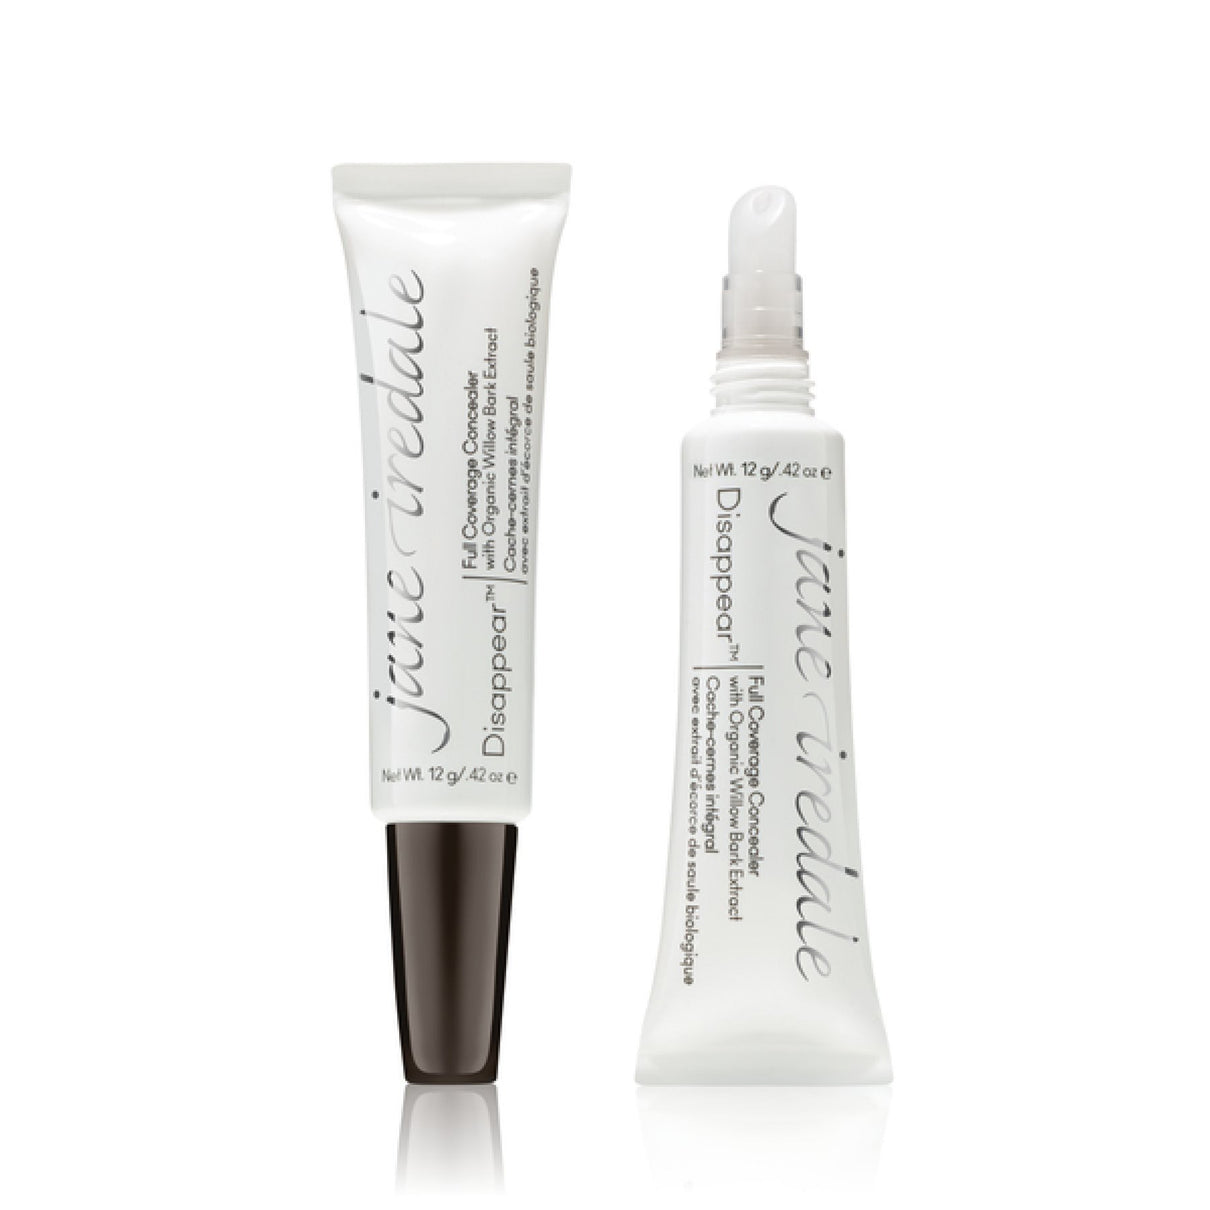 Disappear™ Full Coverage Concealer